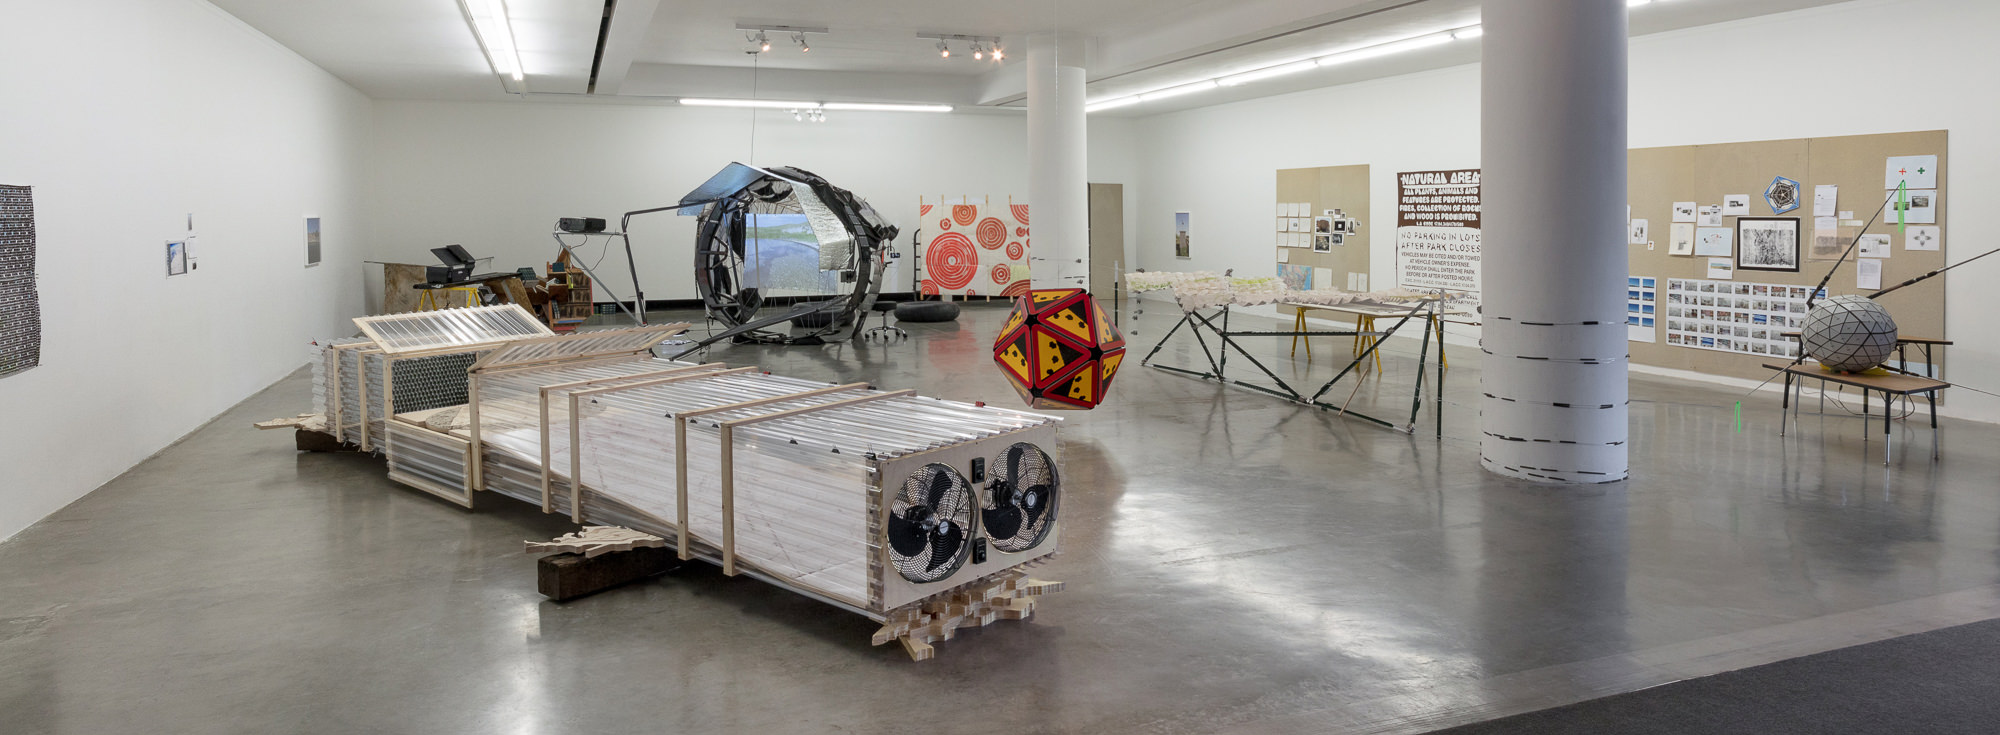 Installation view with Huerfano Proposal (Section 16, T 26 S/R 66 W), 2018. Photo: Brica Wilcox